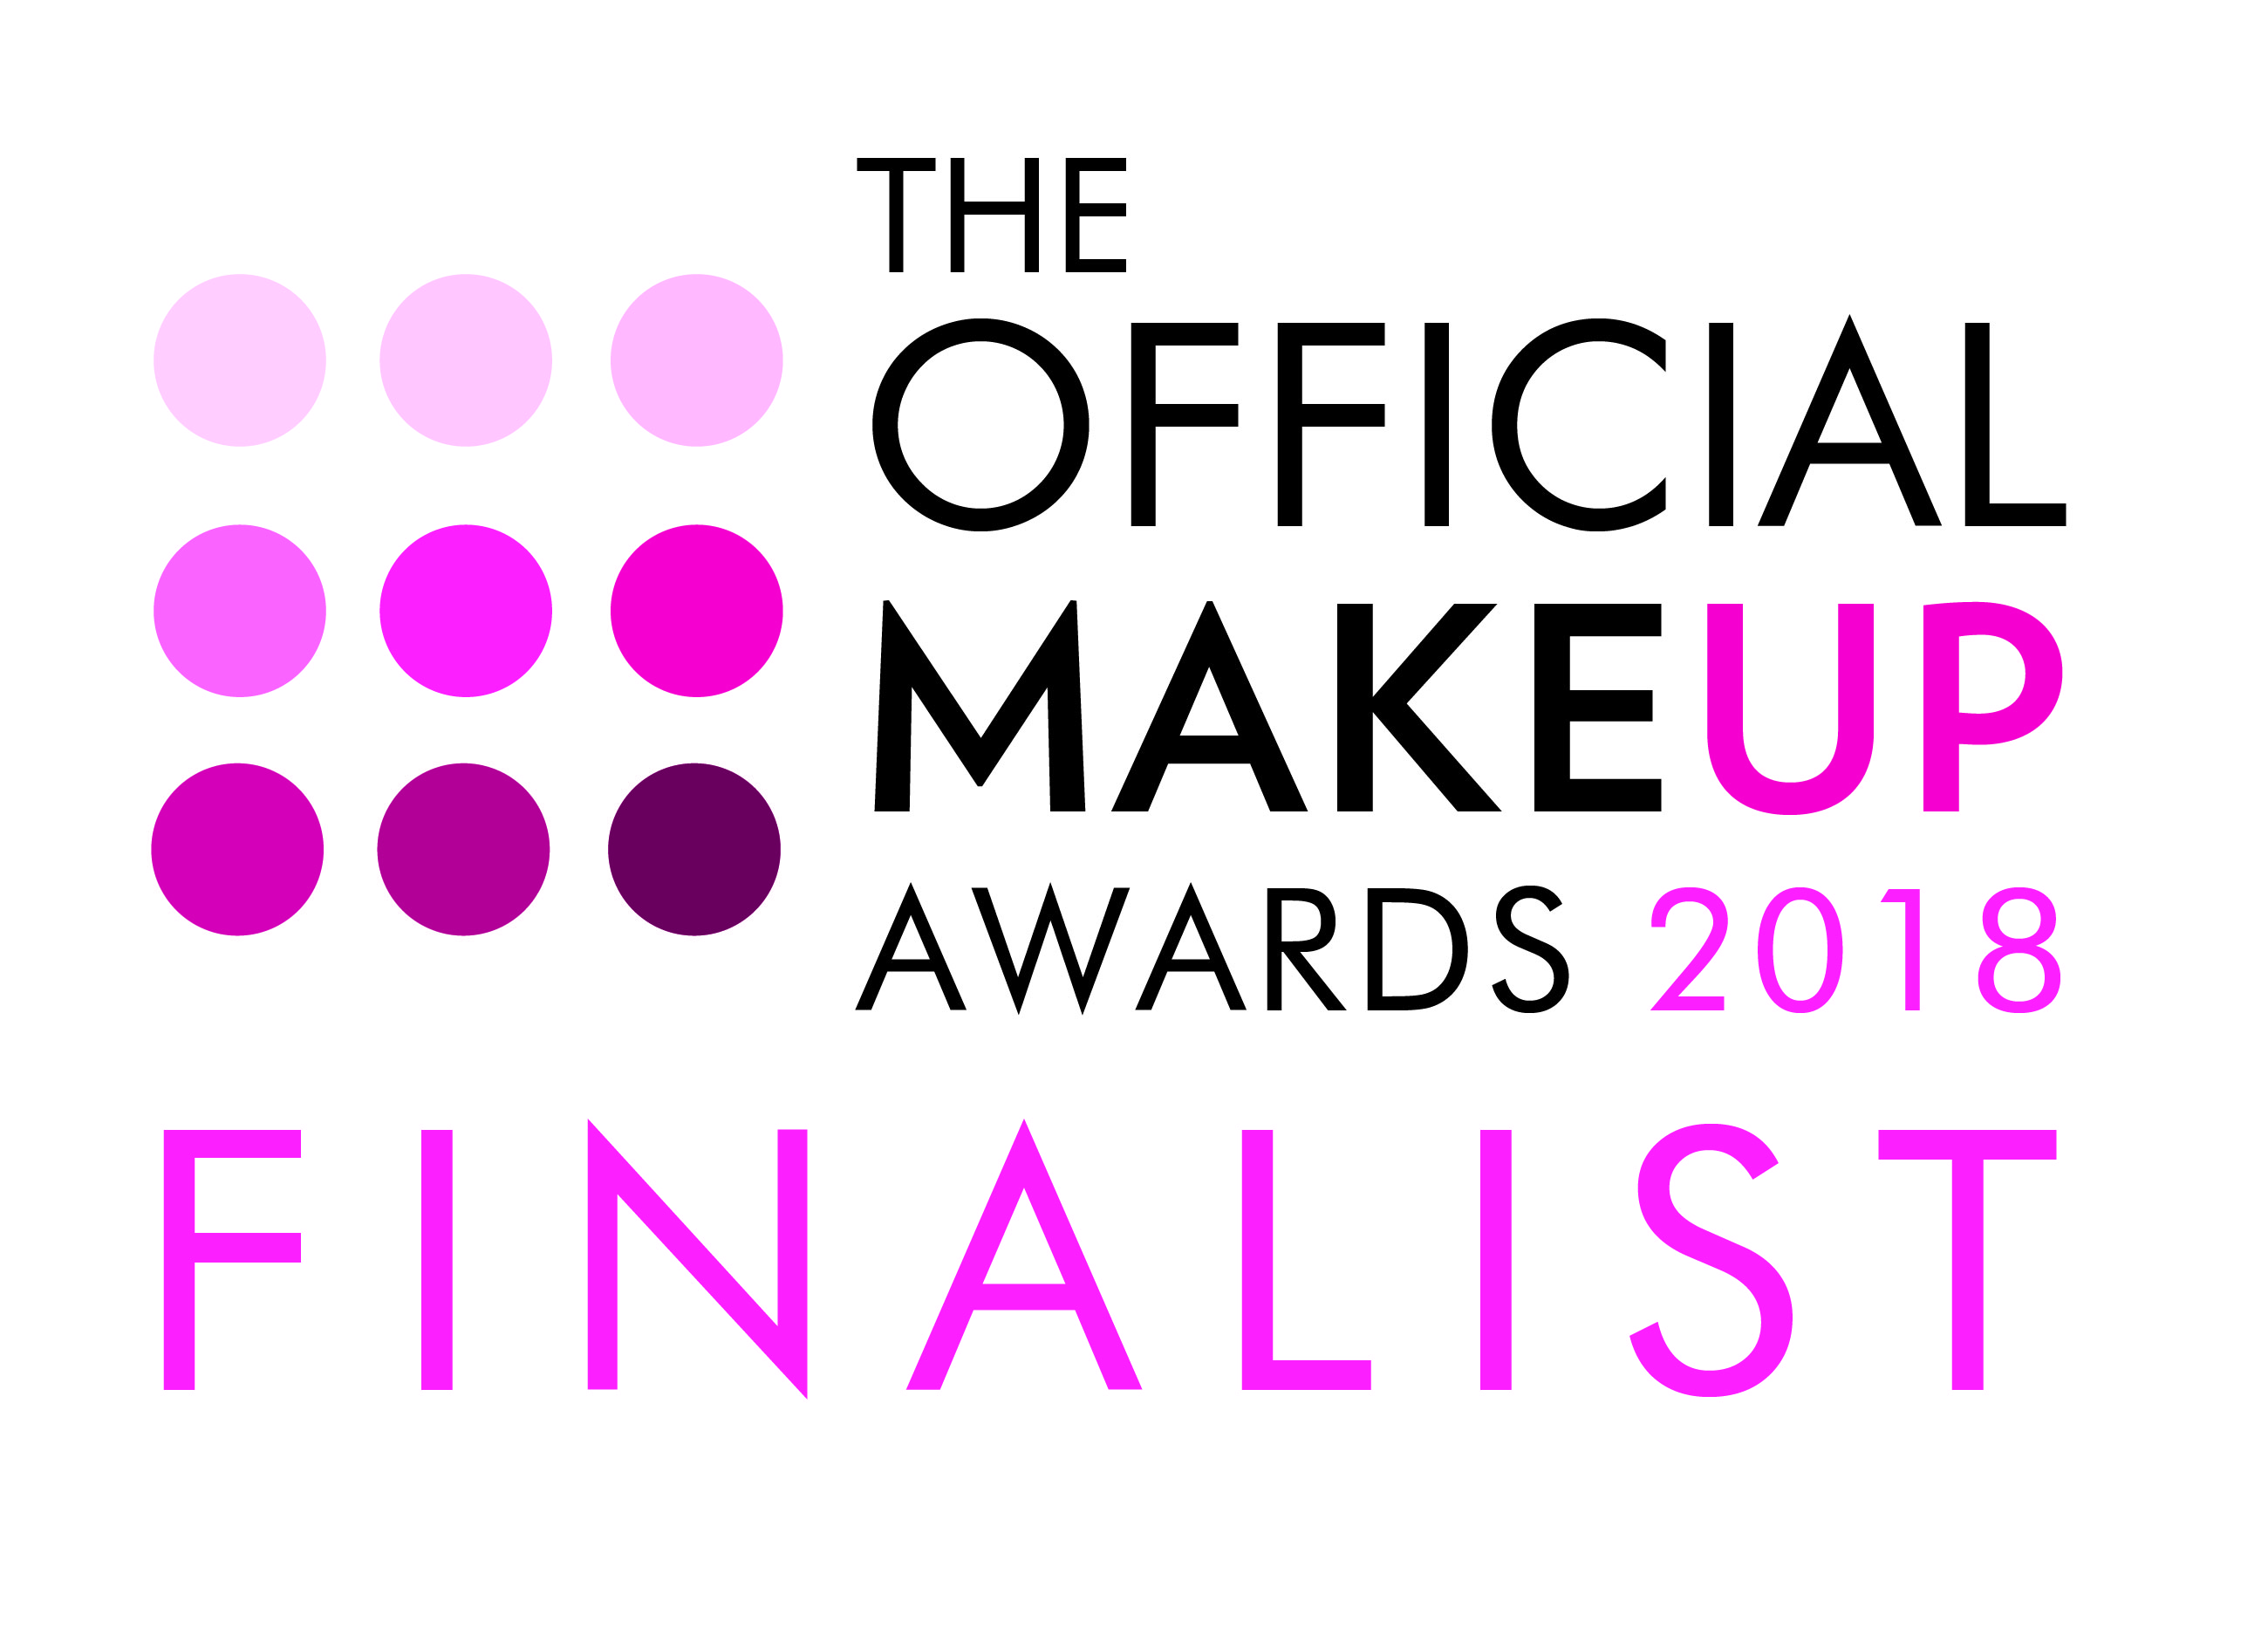 The Official Makeup Awards 2018 Finalist